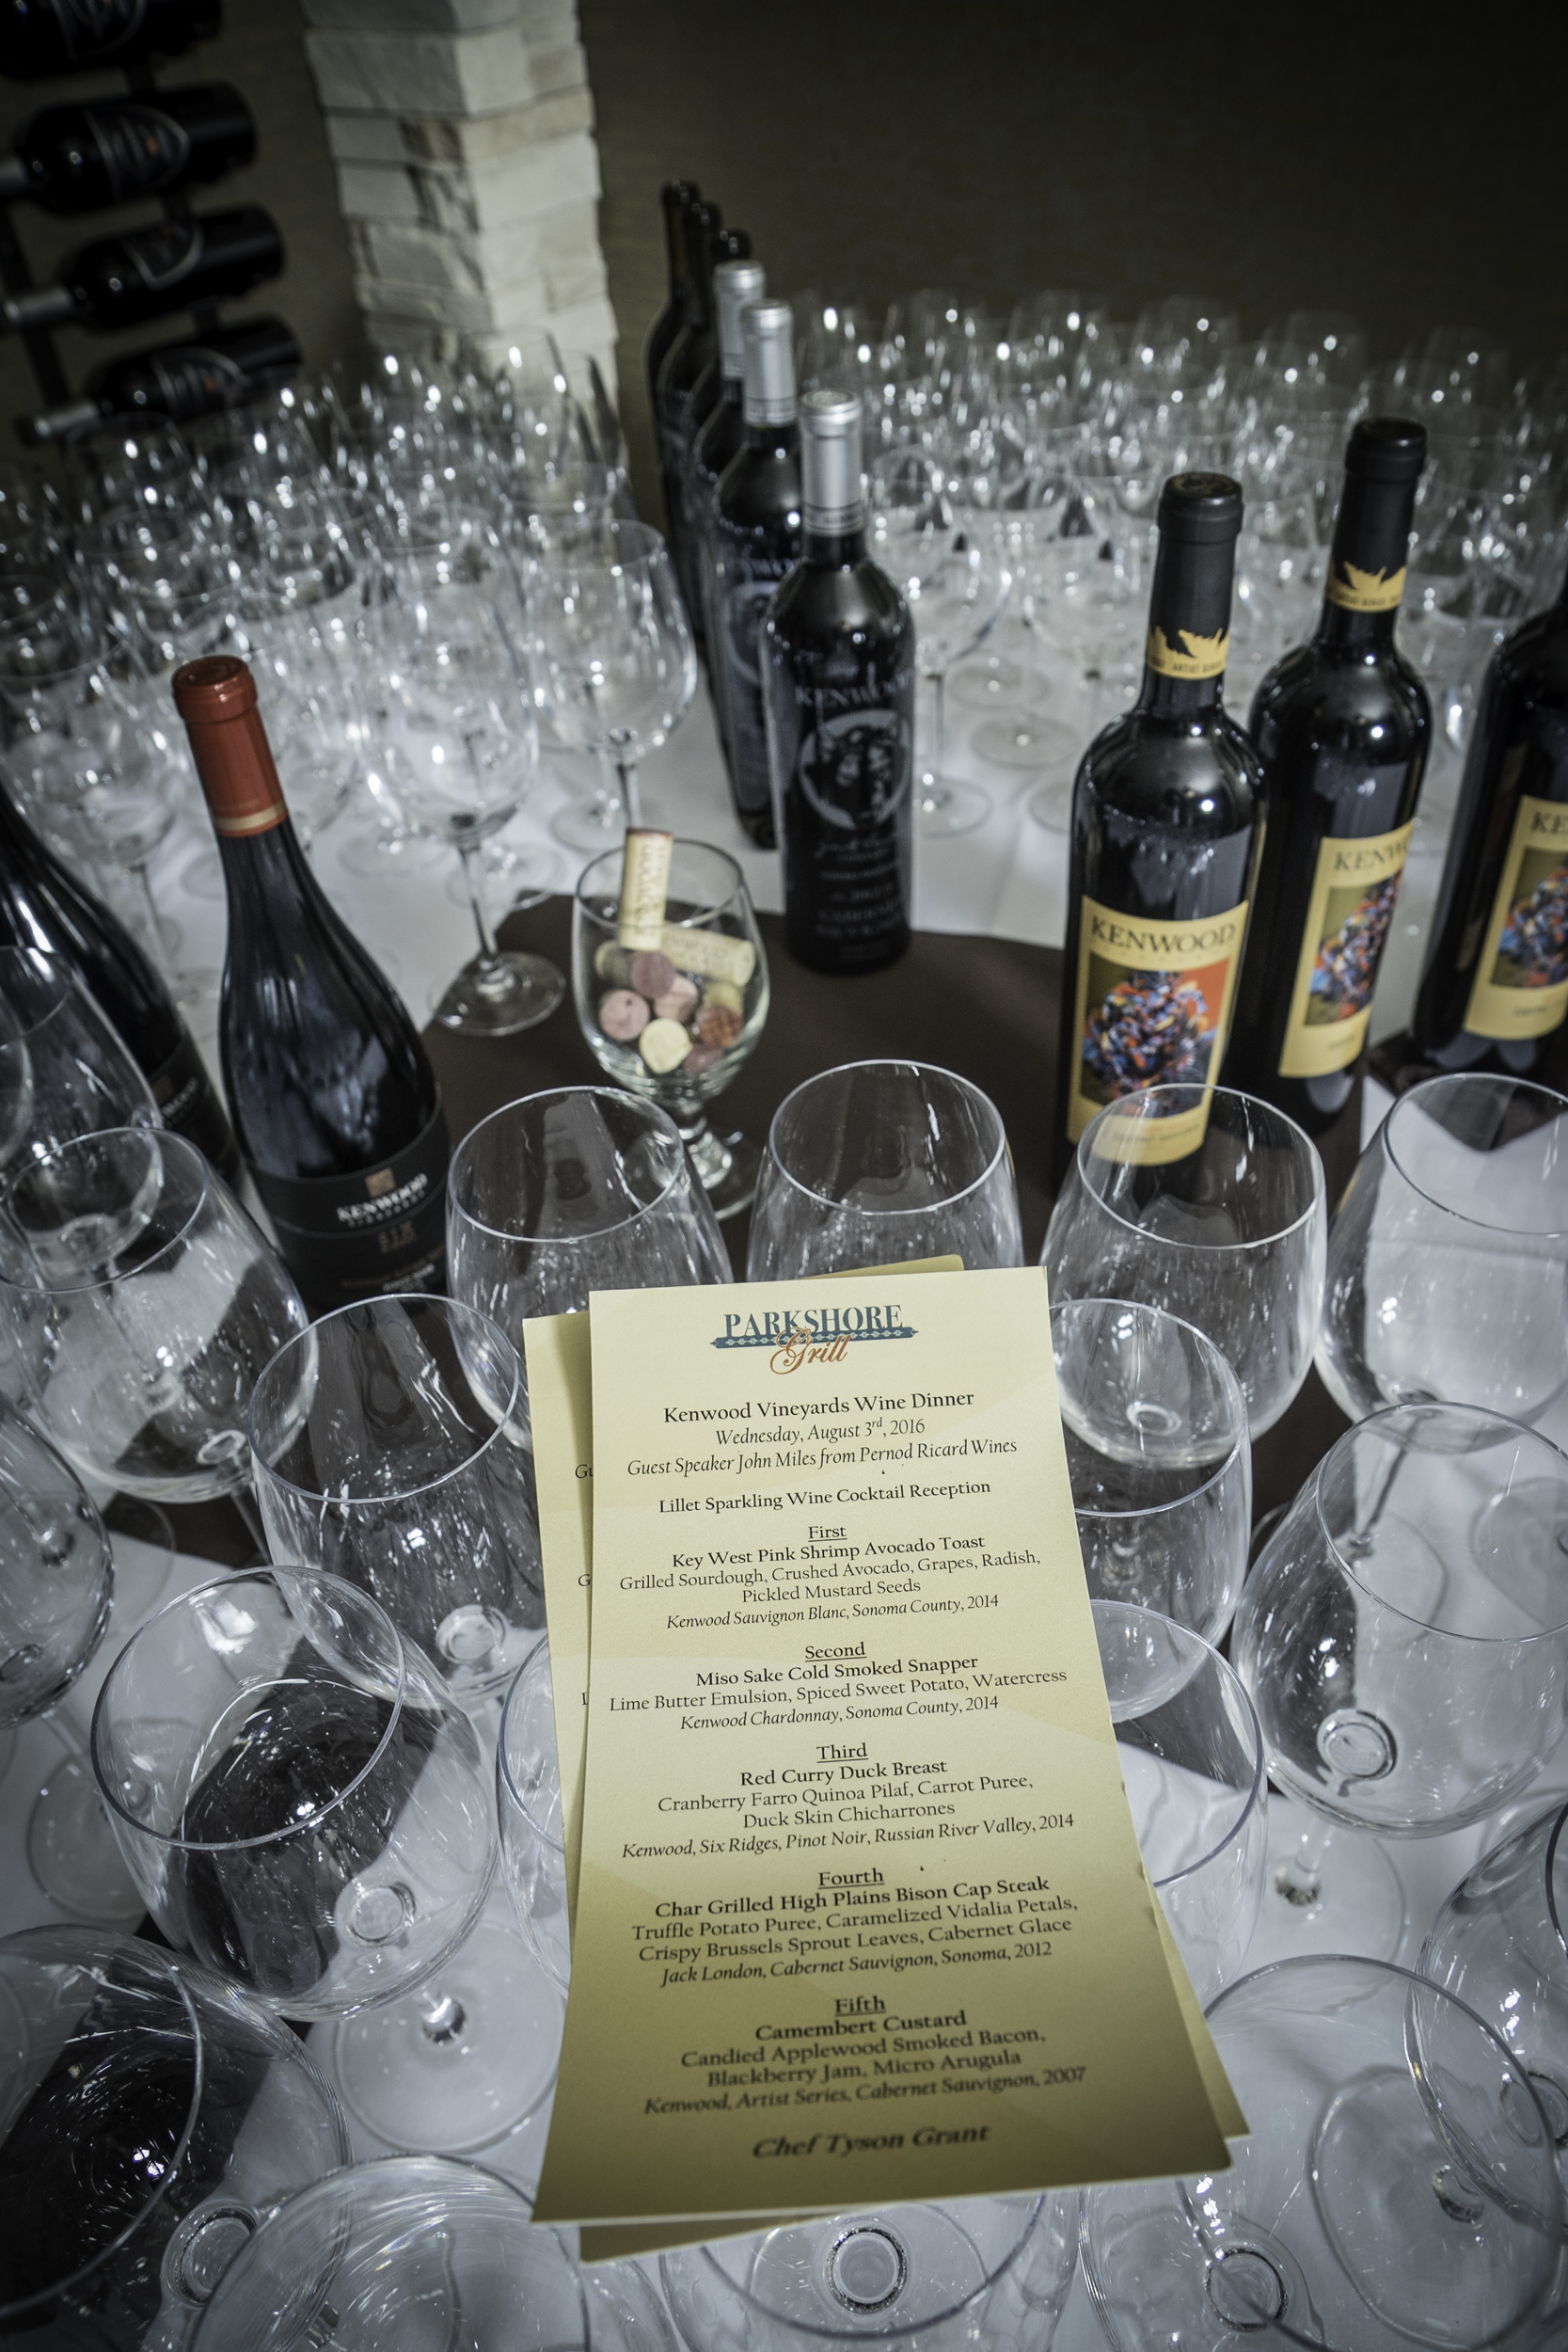 Parkshore Grille Kenwood Vineyards Wine Dinner